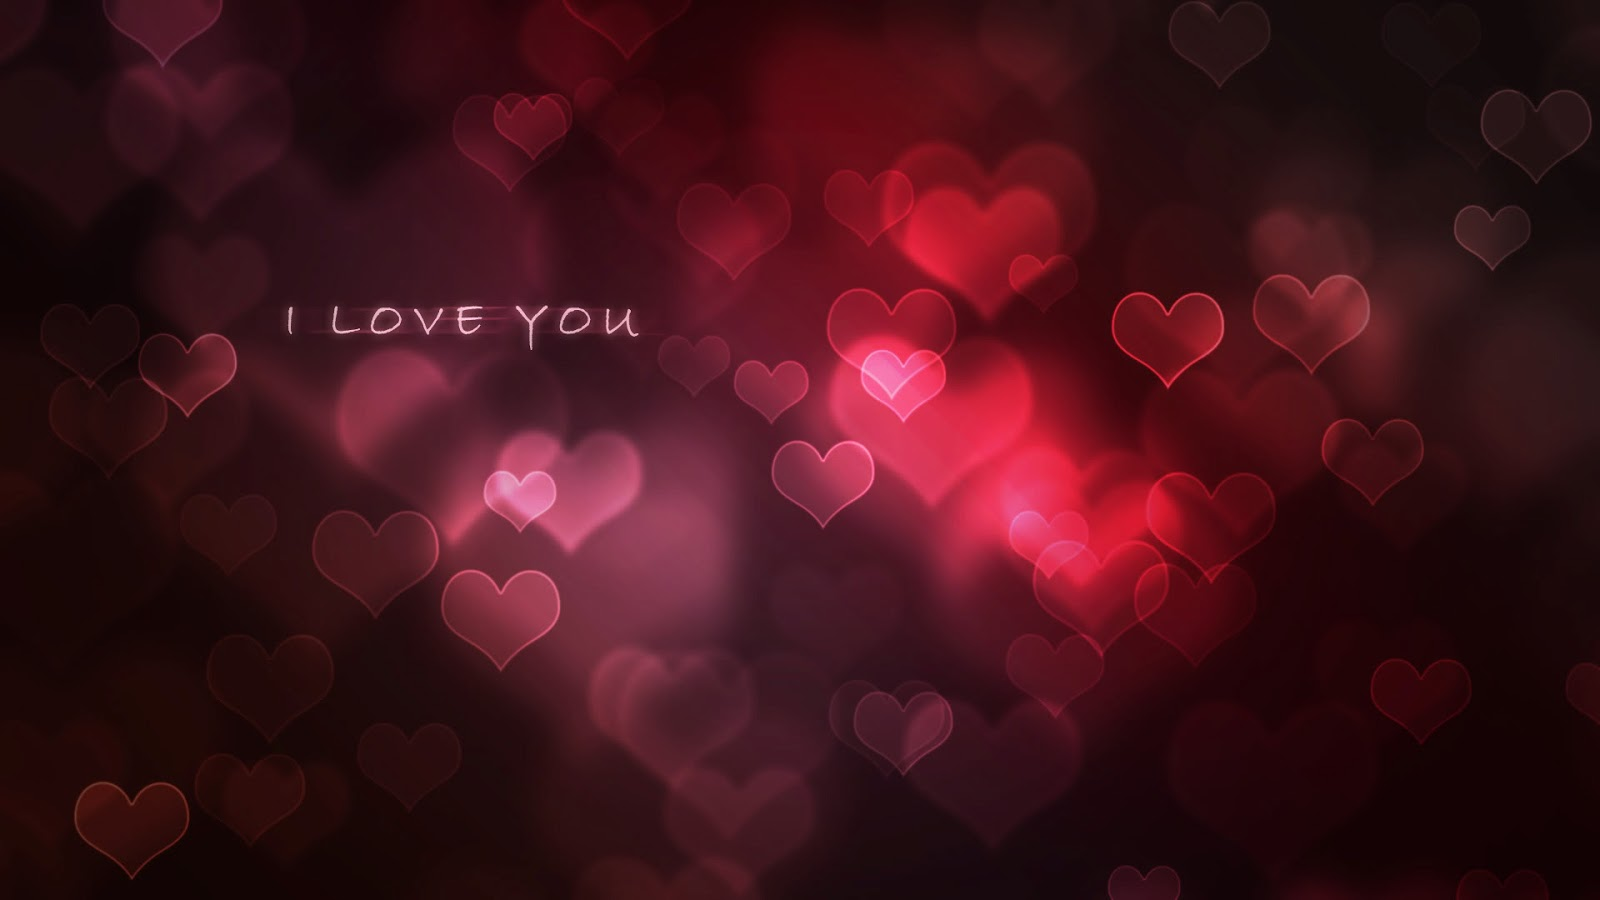 love red wallpaper love wallpaper quotes wallpaper red love wallpaper 1600x900